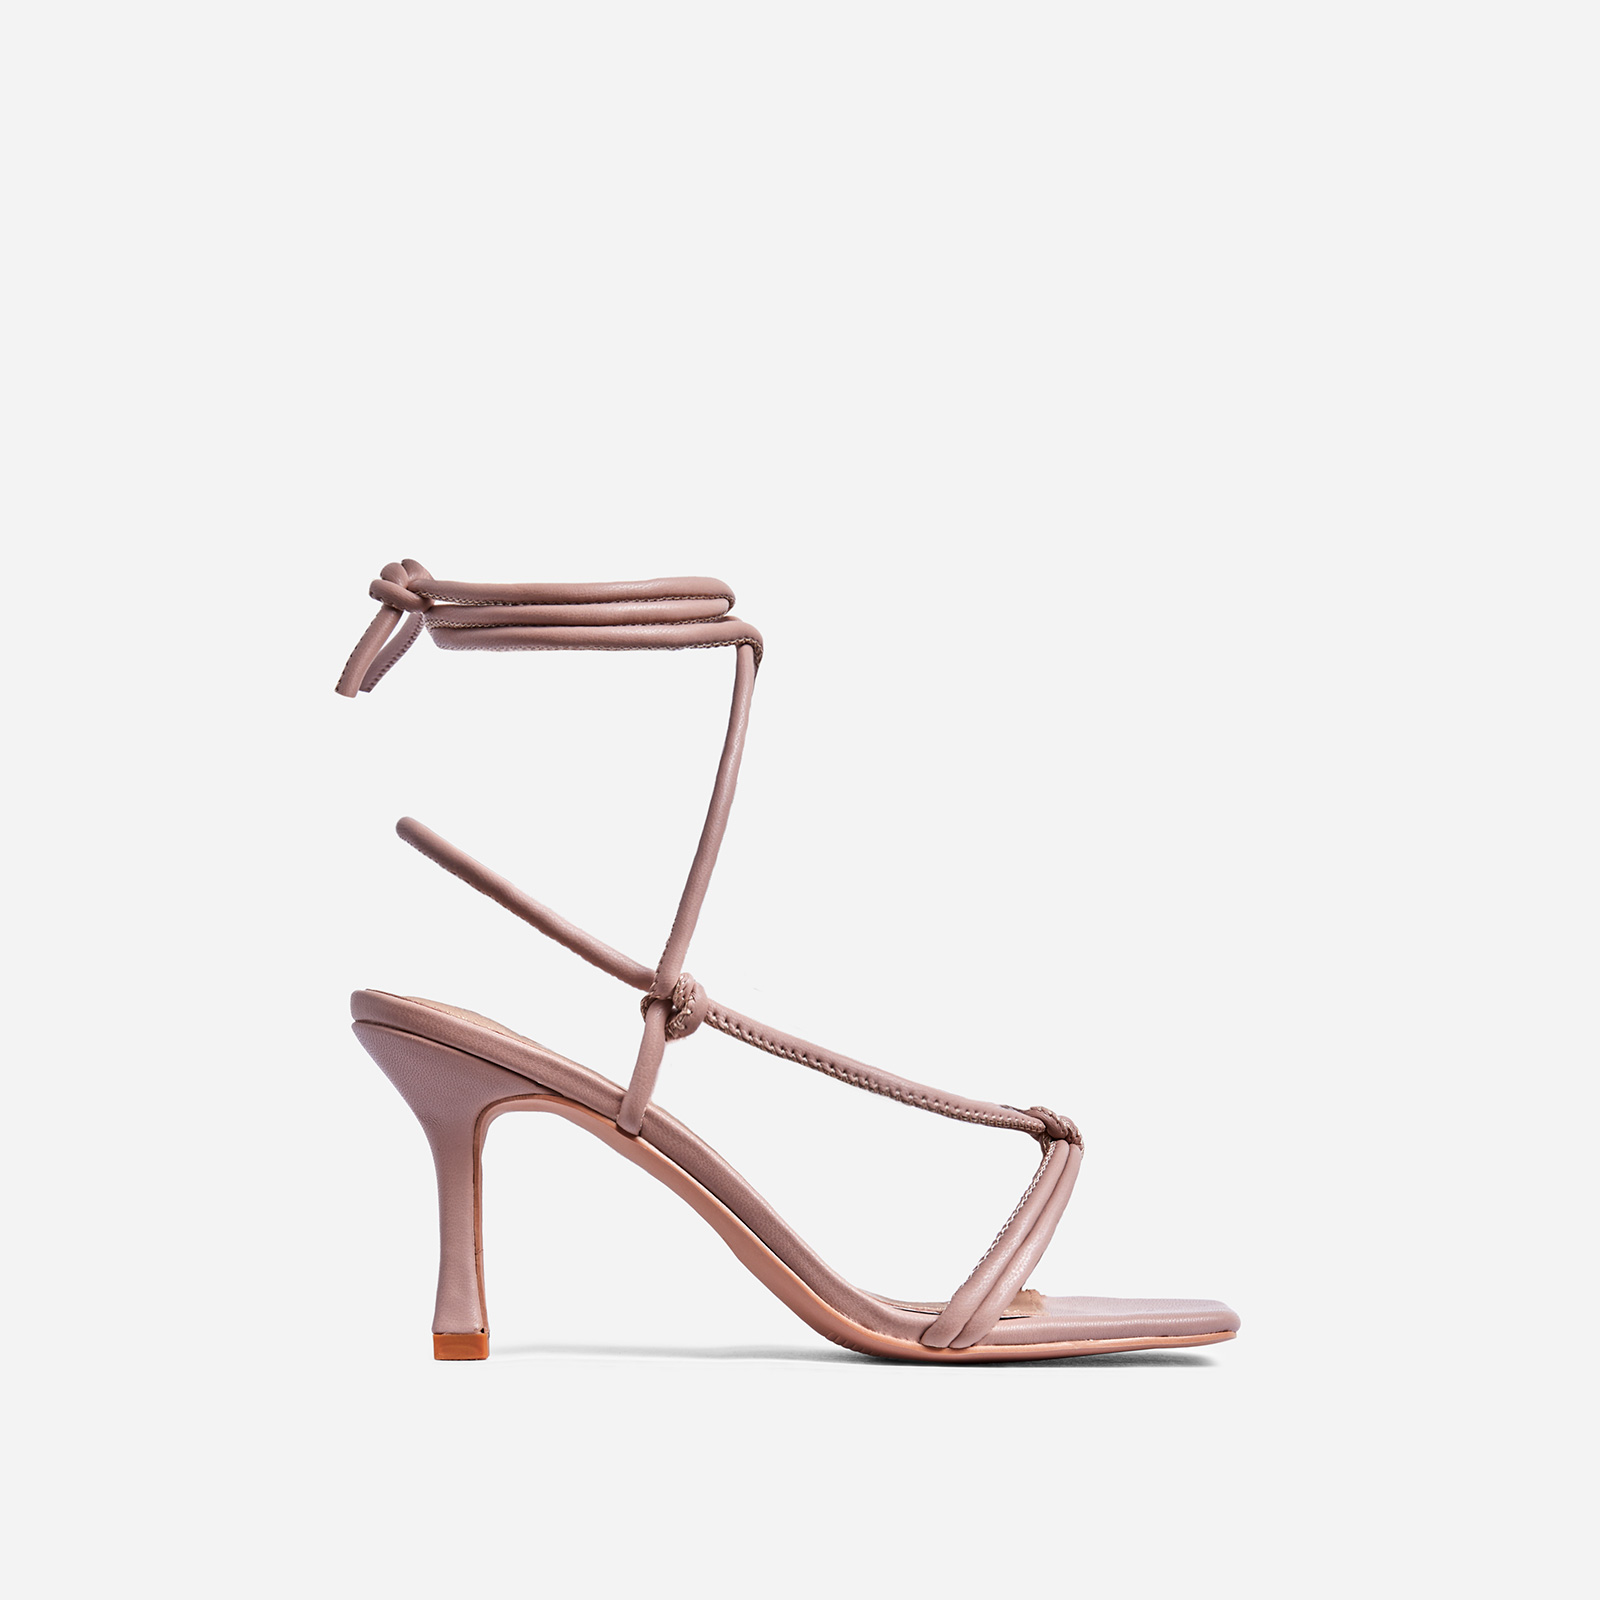 Priya Square Toe Lace Up Heel In Nude Faux Leather